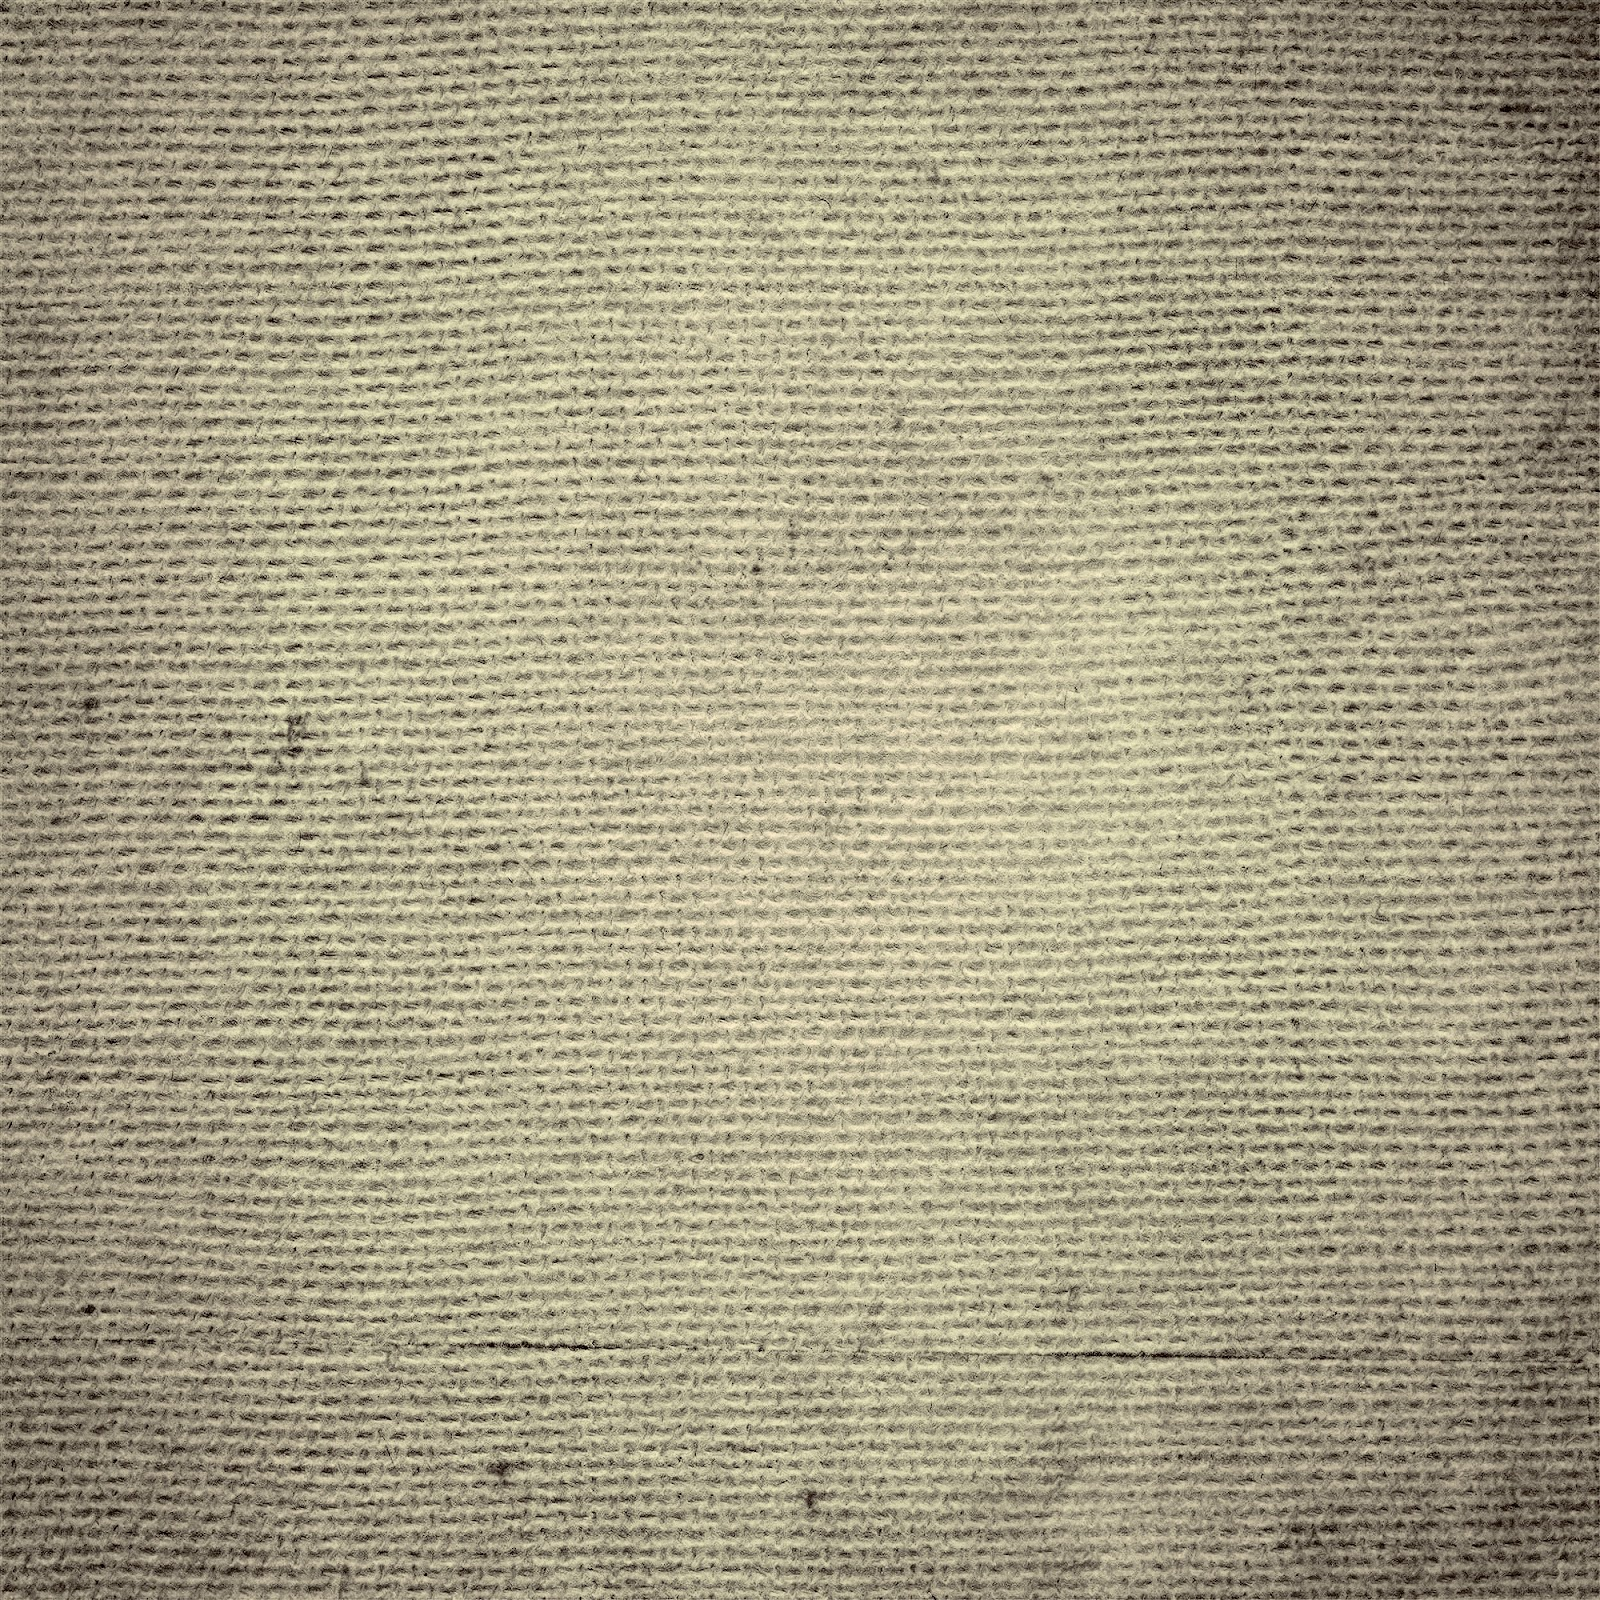 Shadowhouse Creations: Canvas Paper Texture & Example